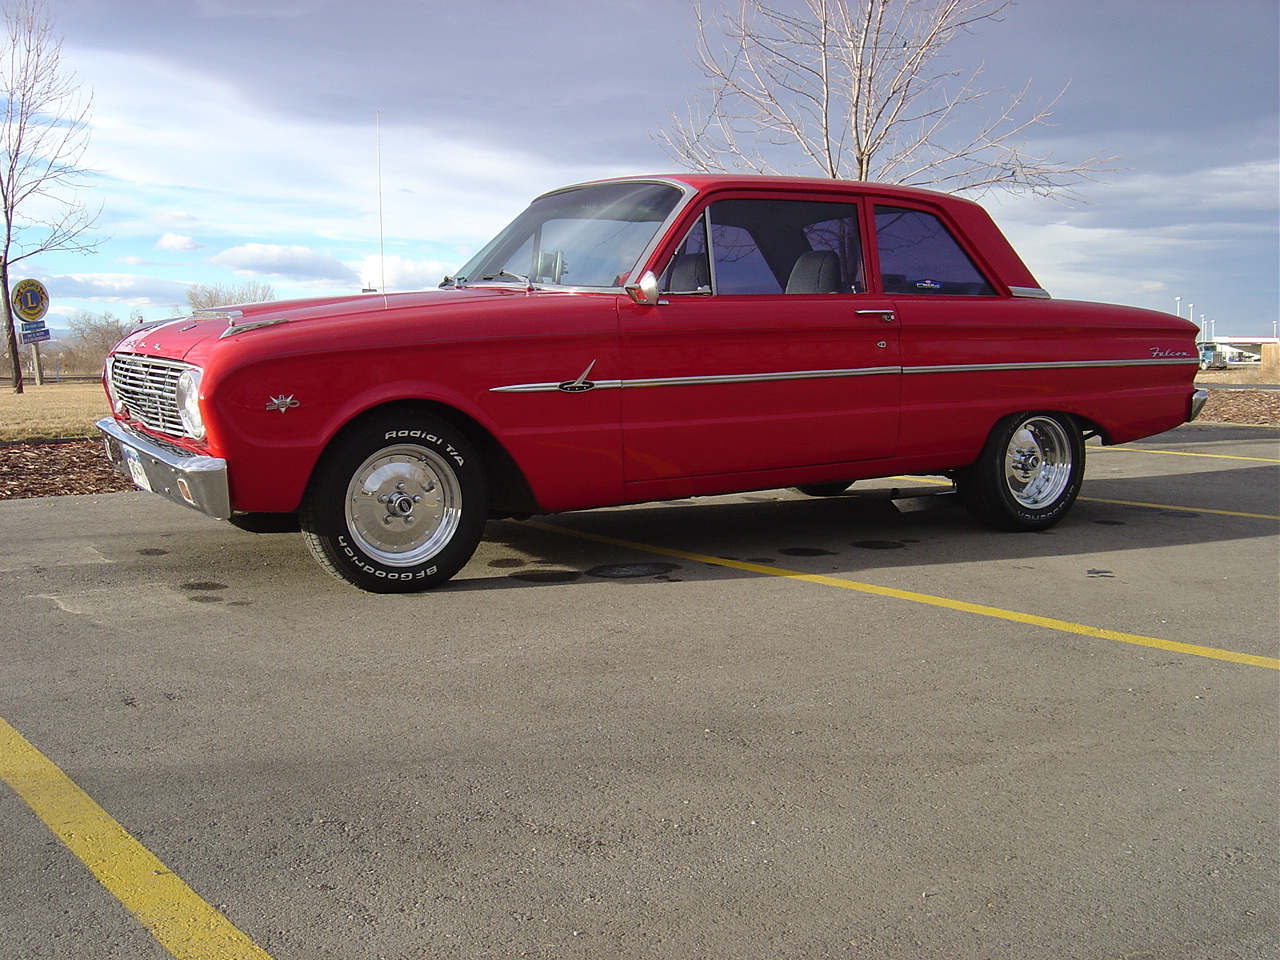 1963 Ford Falcon Sale in addition 1963 Mercury  et Convertible together with 63 Ford Falcon Sprint additionally 1963 Ford Falcon Futura Convertible together with 1964 Ford Fairlane 500 Sports Coupe For Sale. on 1963 ford falcon sprint hardtop for sale